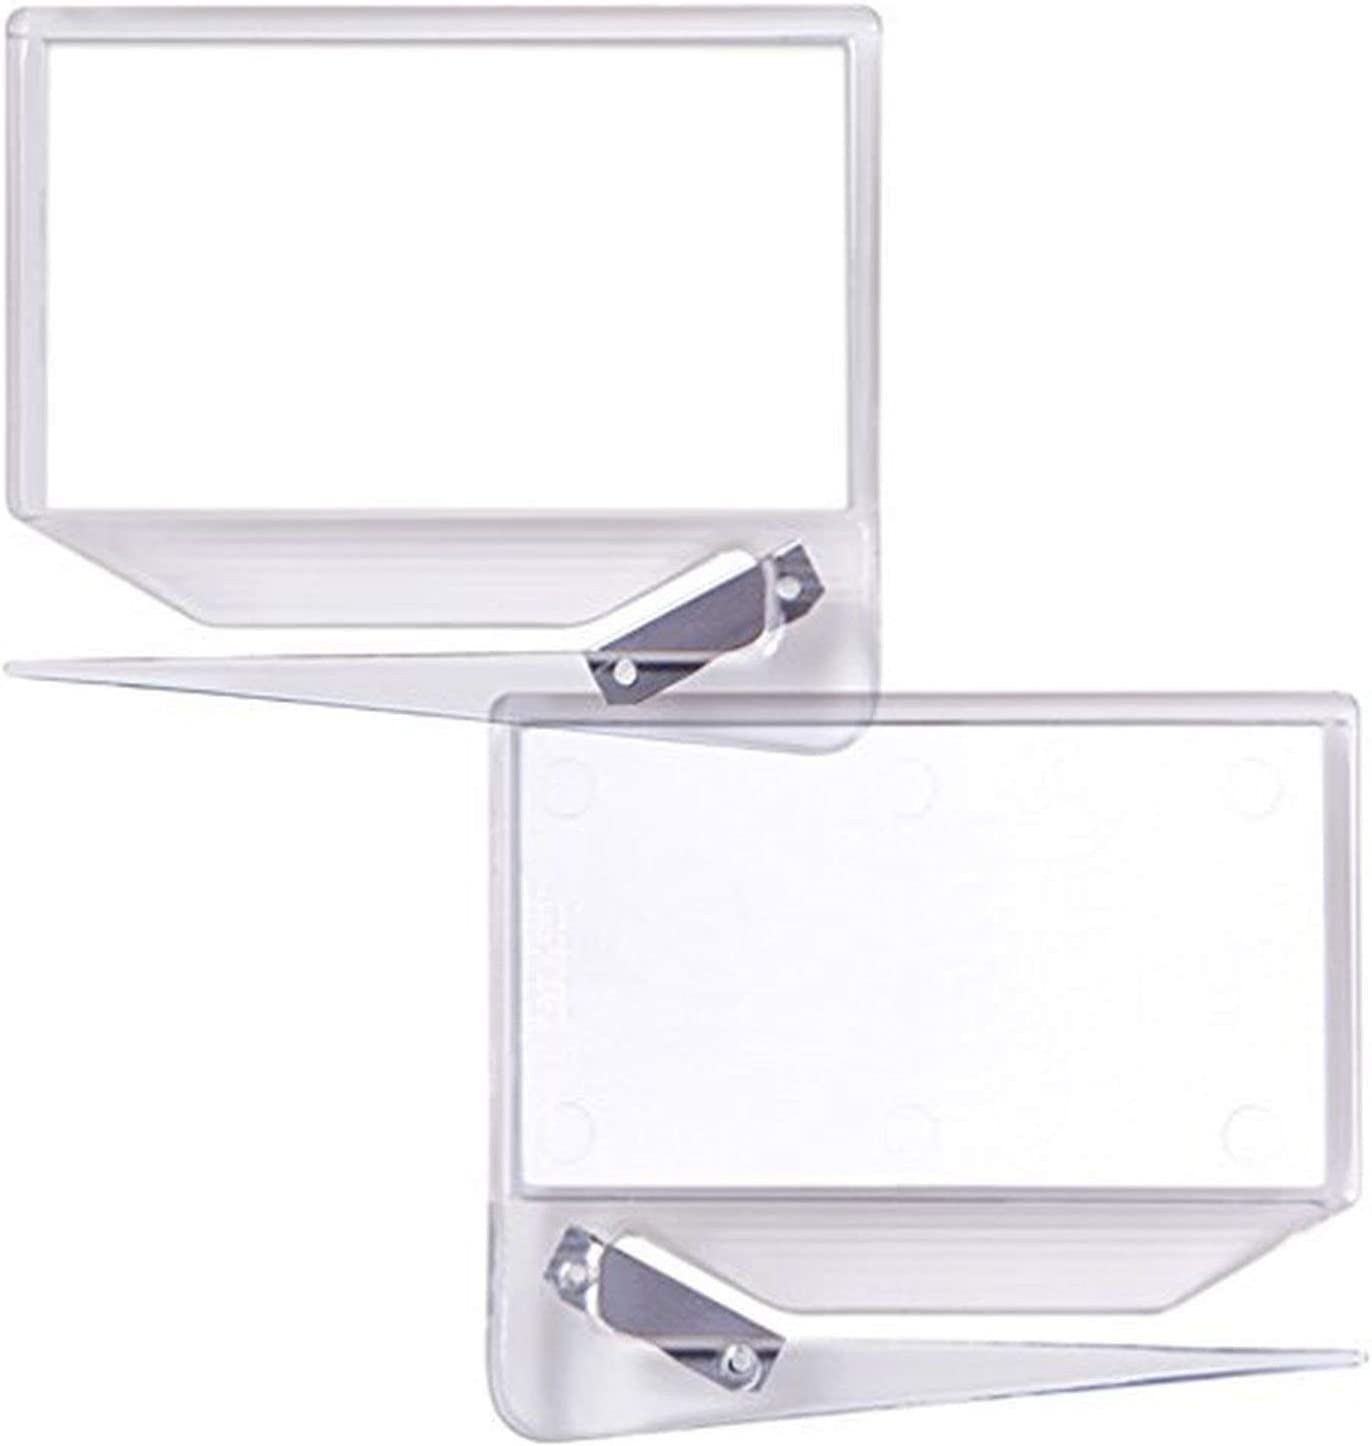 Business Card Zippy Letter Opener, Clear, Made in The USA (3 Pack)